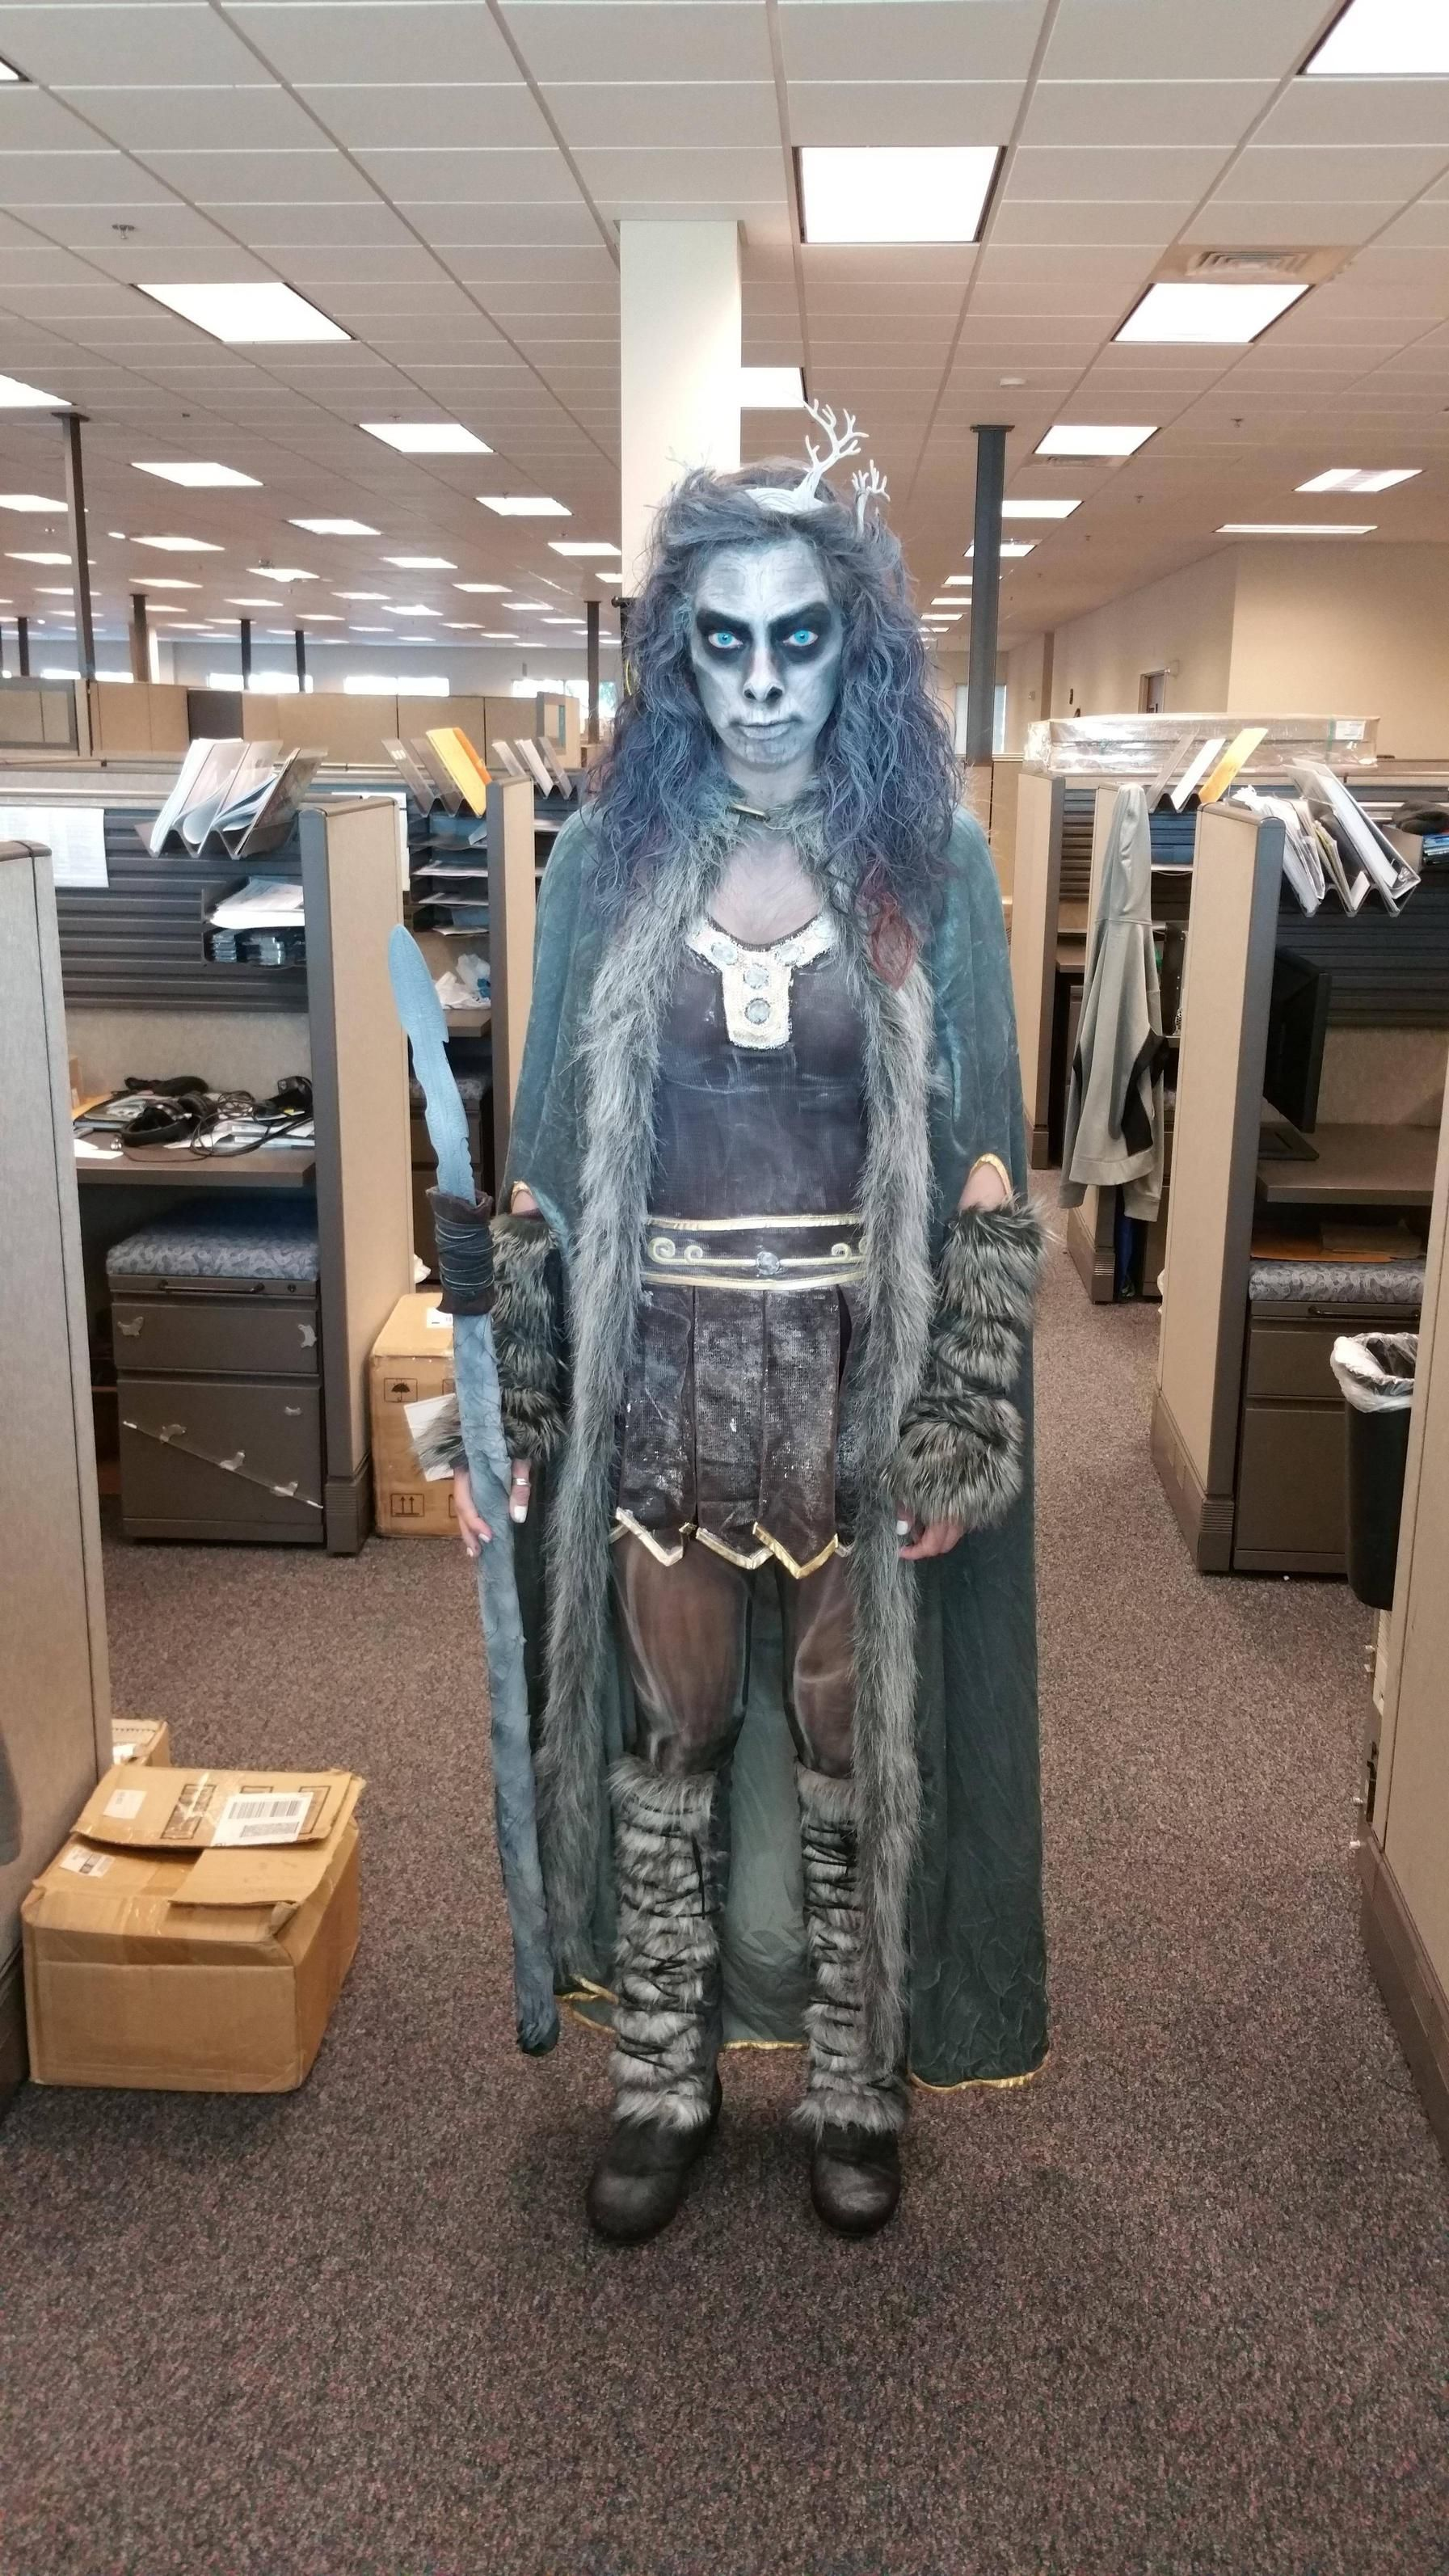 White Walker Gaming, Costumes and Halloween ideas